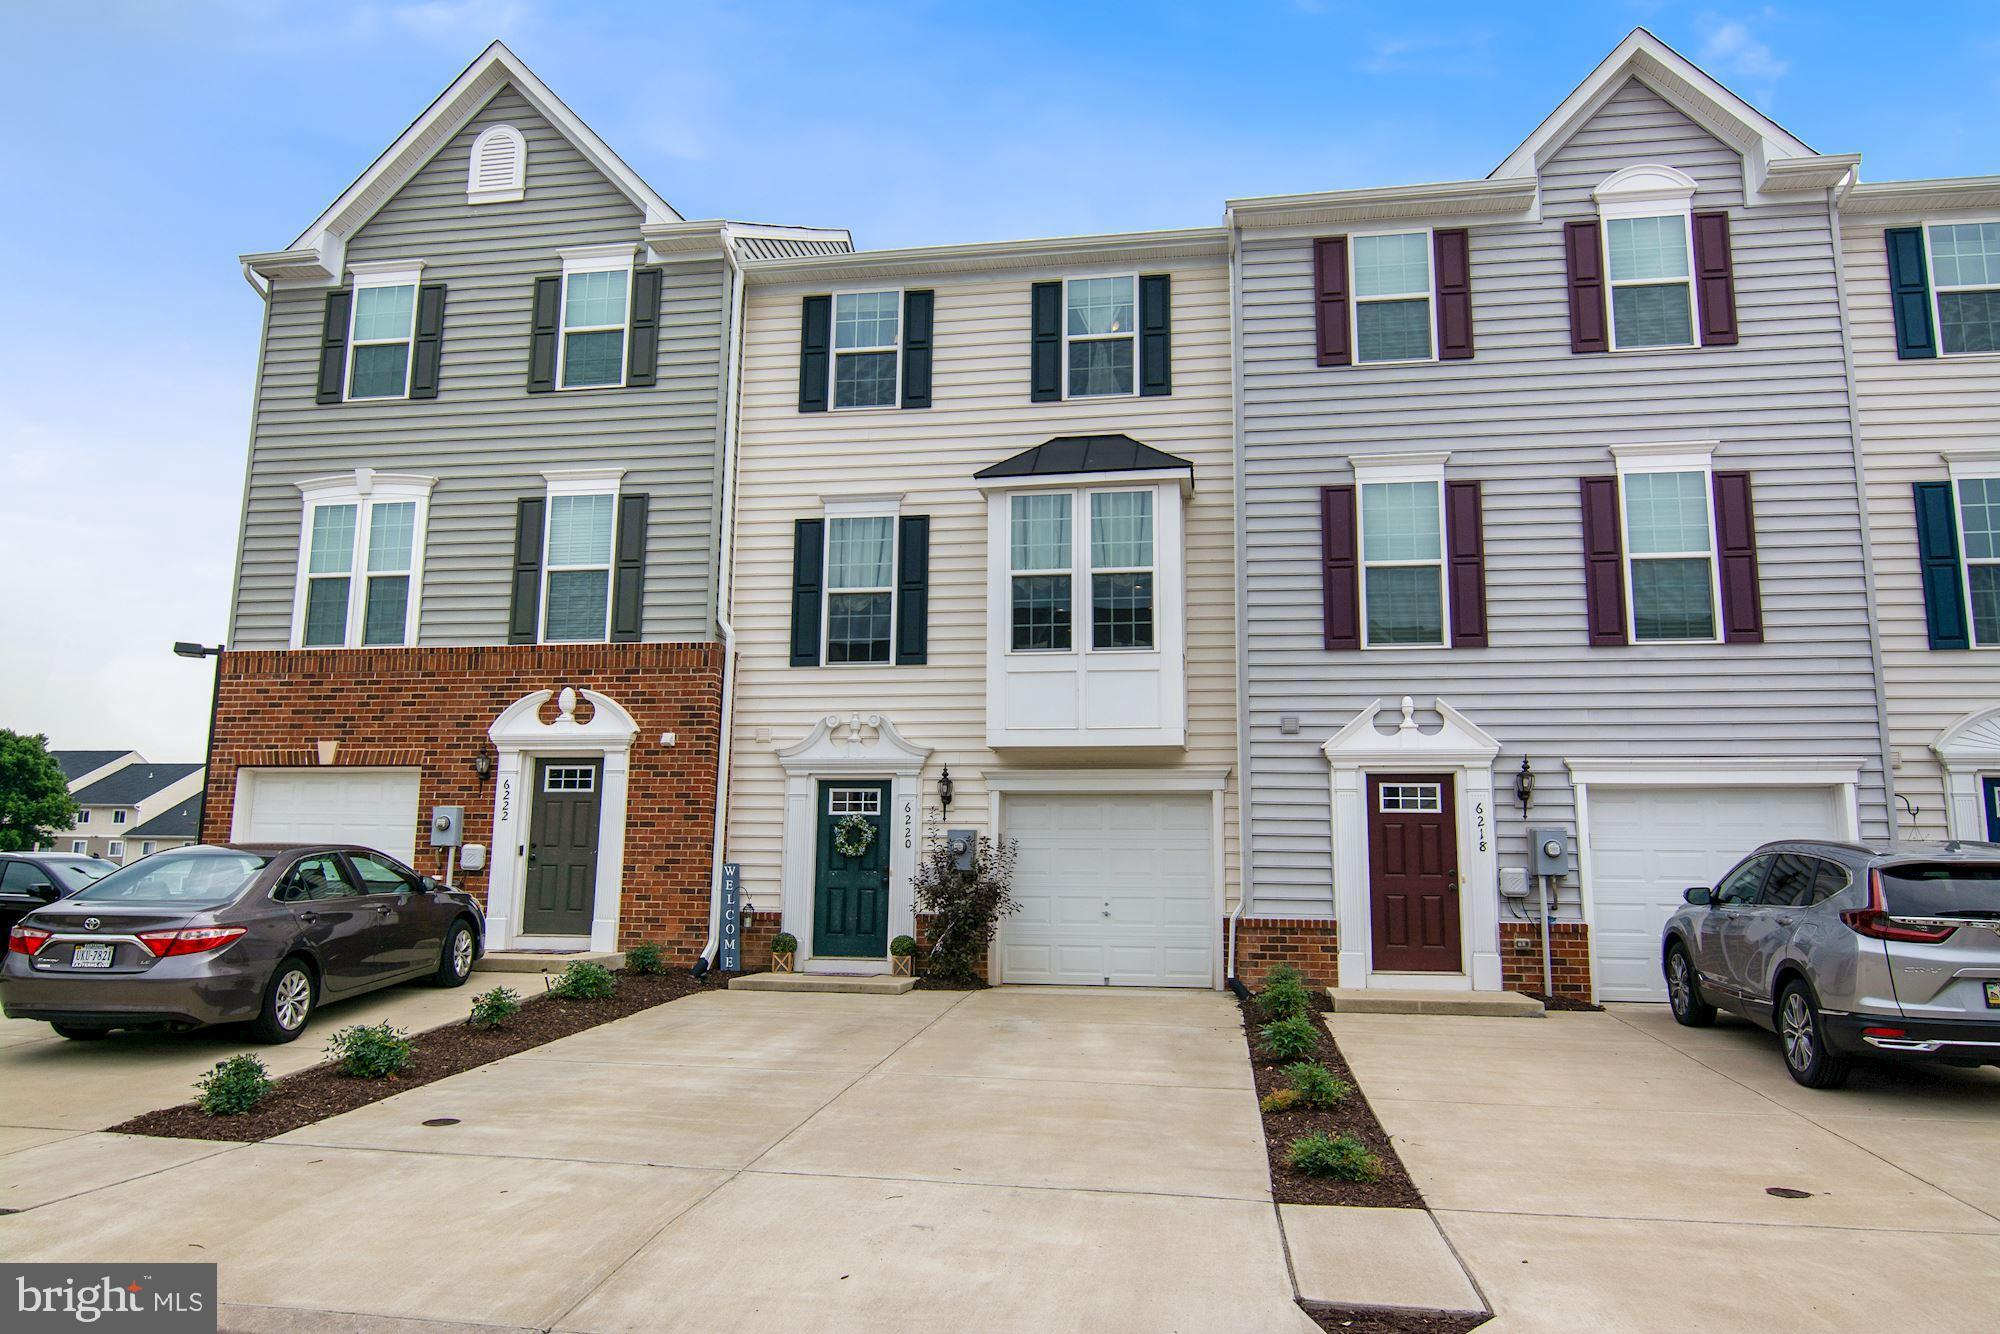 Meticulously maintained 3-level town home in desirable Waverly Station! Practically brand new--built in 2018. All on-trend finishes with an open floor plan and tons of natural light gives this home a comfortable and spacious feel. Featuring 3 bedrooms, 2 full baths, and a 1/2 bath with 1734 square feet of living space. Hardwood flooring and carpet throughout the entire home. Gorgeous dark maple cabinets, large island, and stainless steel appliances make the kitchen a dream! Sliding door in dining area leads to a generous-sized deck for relaxing. The upper level includes a primary bedroom with en suite, 2 more bedrooms, a hall bath, and a convenient upper level laundry. The lower level includes a light filled rec room with a 1/2 bath and access to the 1-car garage as well as to the backyard. Schedule your showing today!